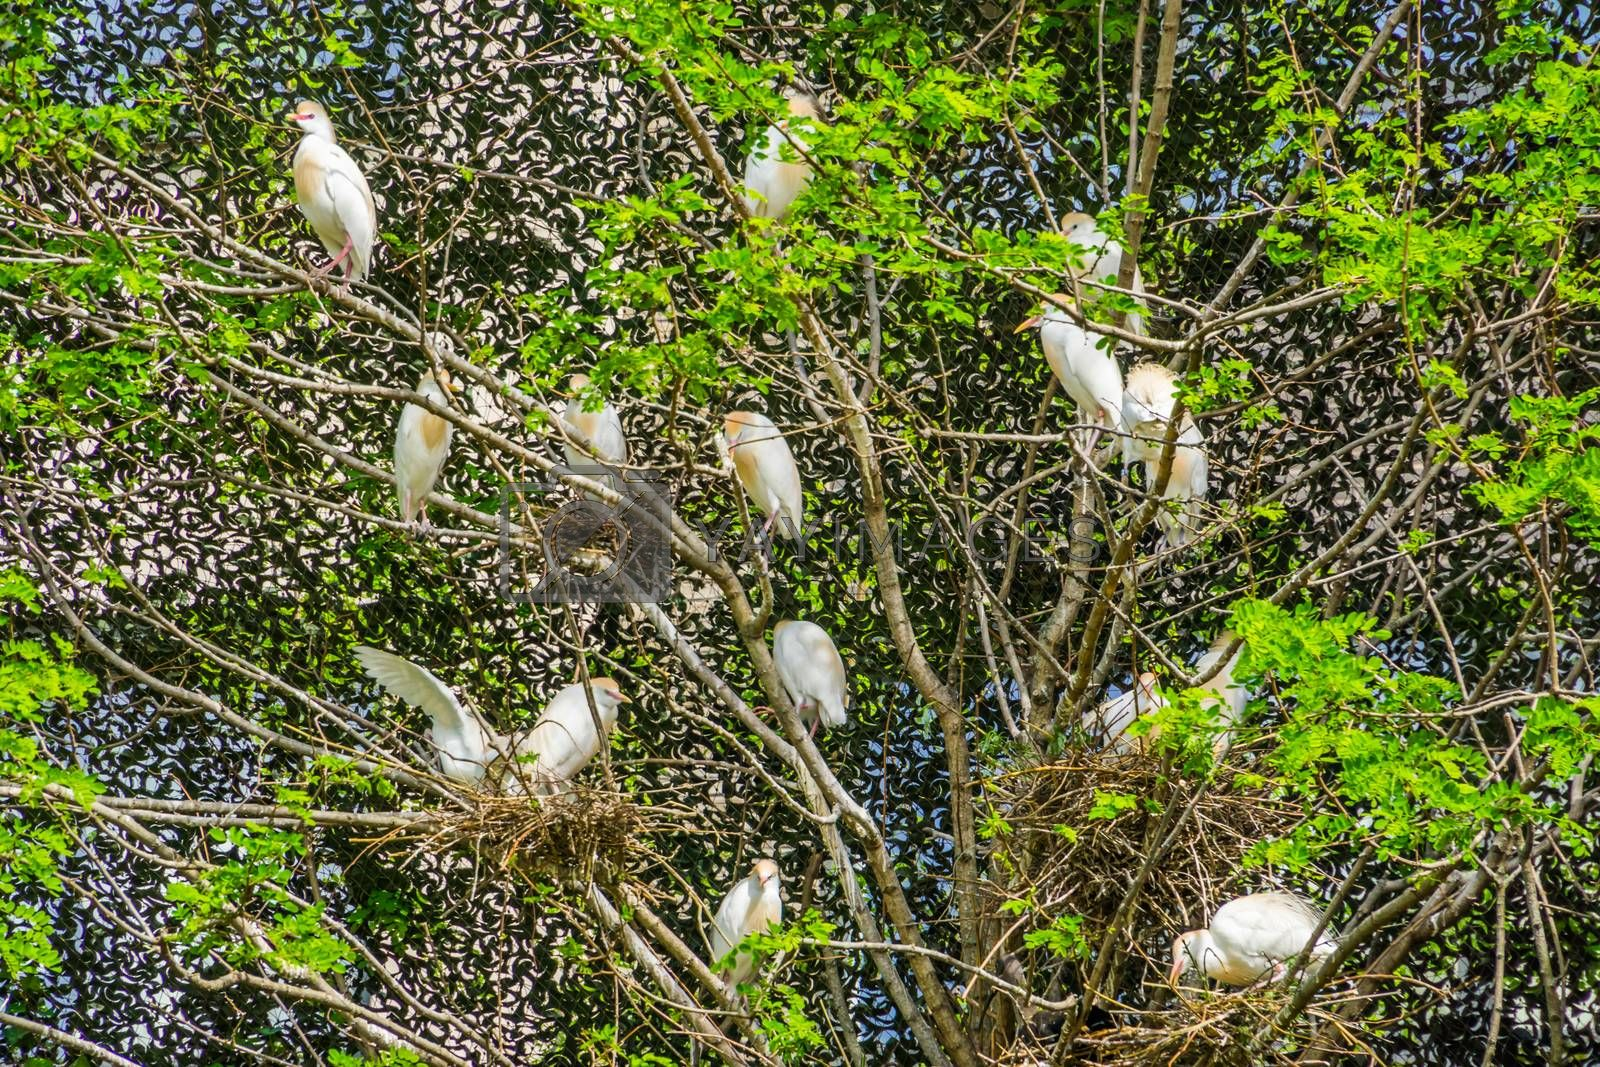 tree filled with a family of cattle egrets, Birds nesting in a tree, bird breeding season during spring by charlotte Bleijenberg